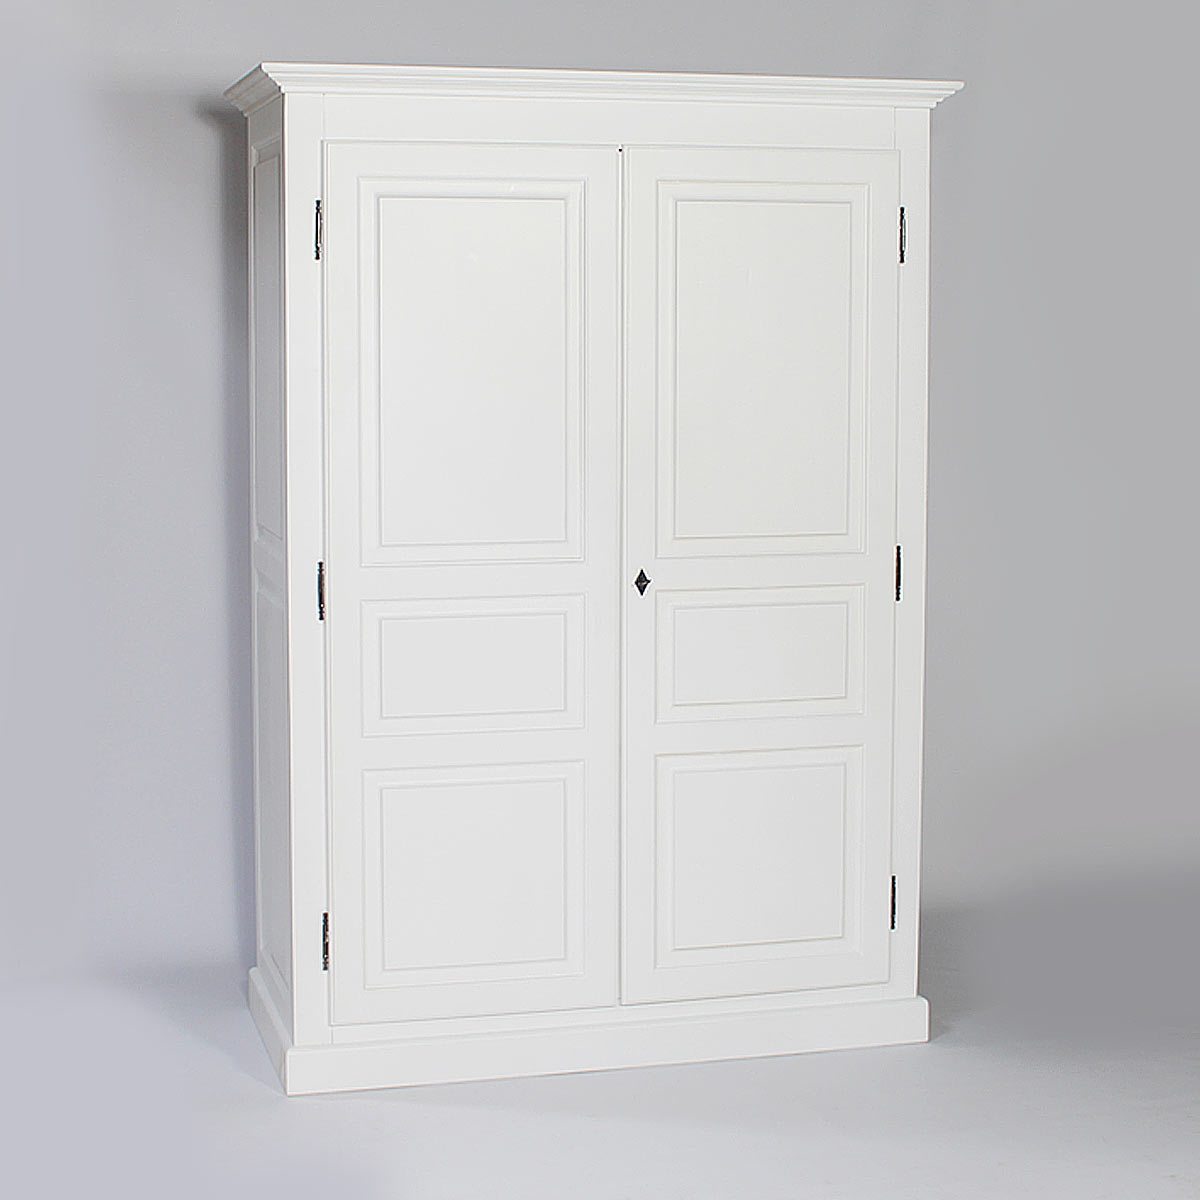 armoire en bois blanc gallery of console bois blanc consoles preppy console tables console. Black Bedroom Furniture Sets. Home Design Ideas